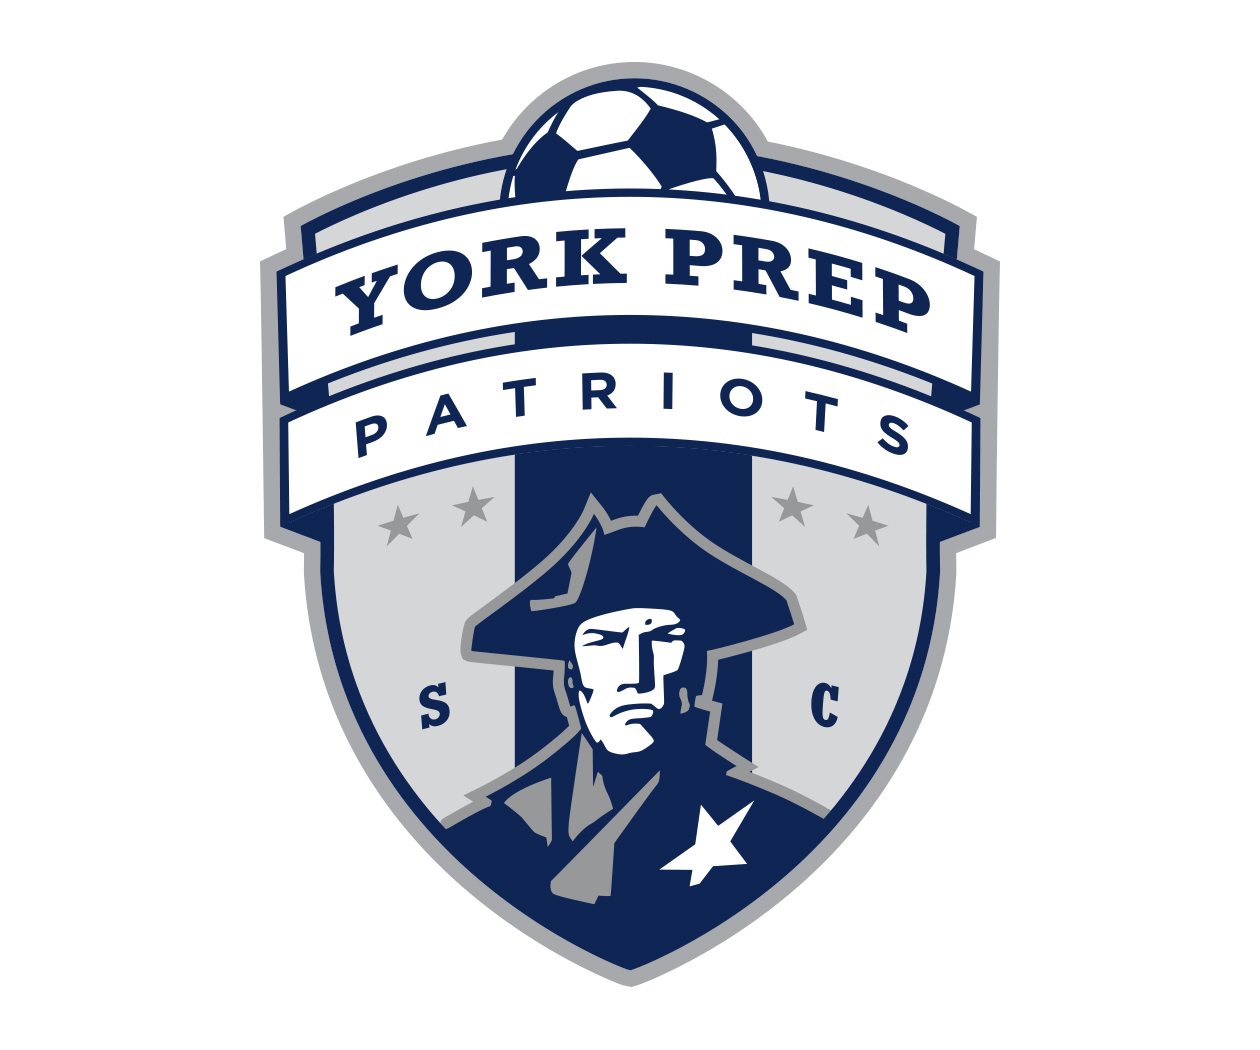 custom-soccer-logo-design-by-jordan-fretz-for-prep-school.jpg